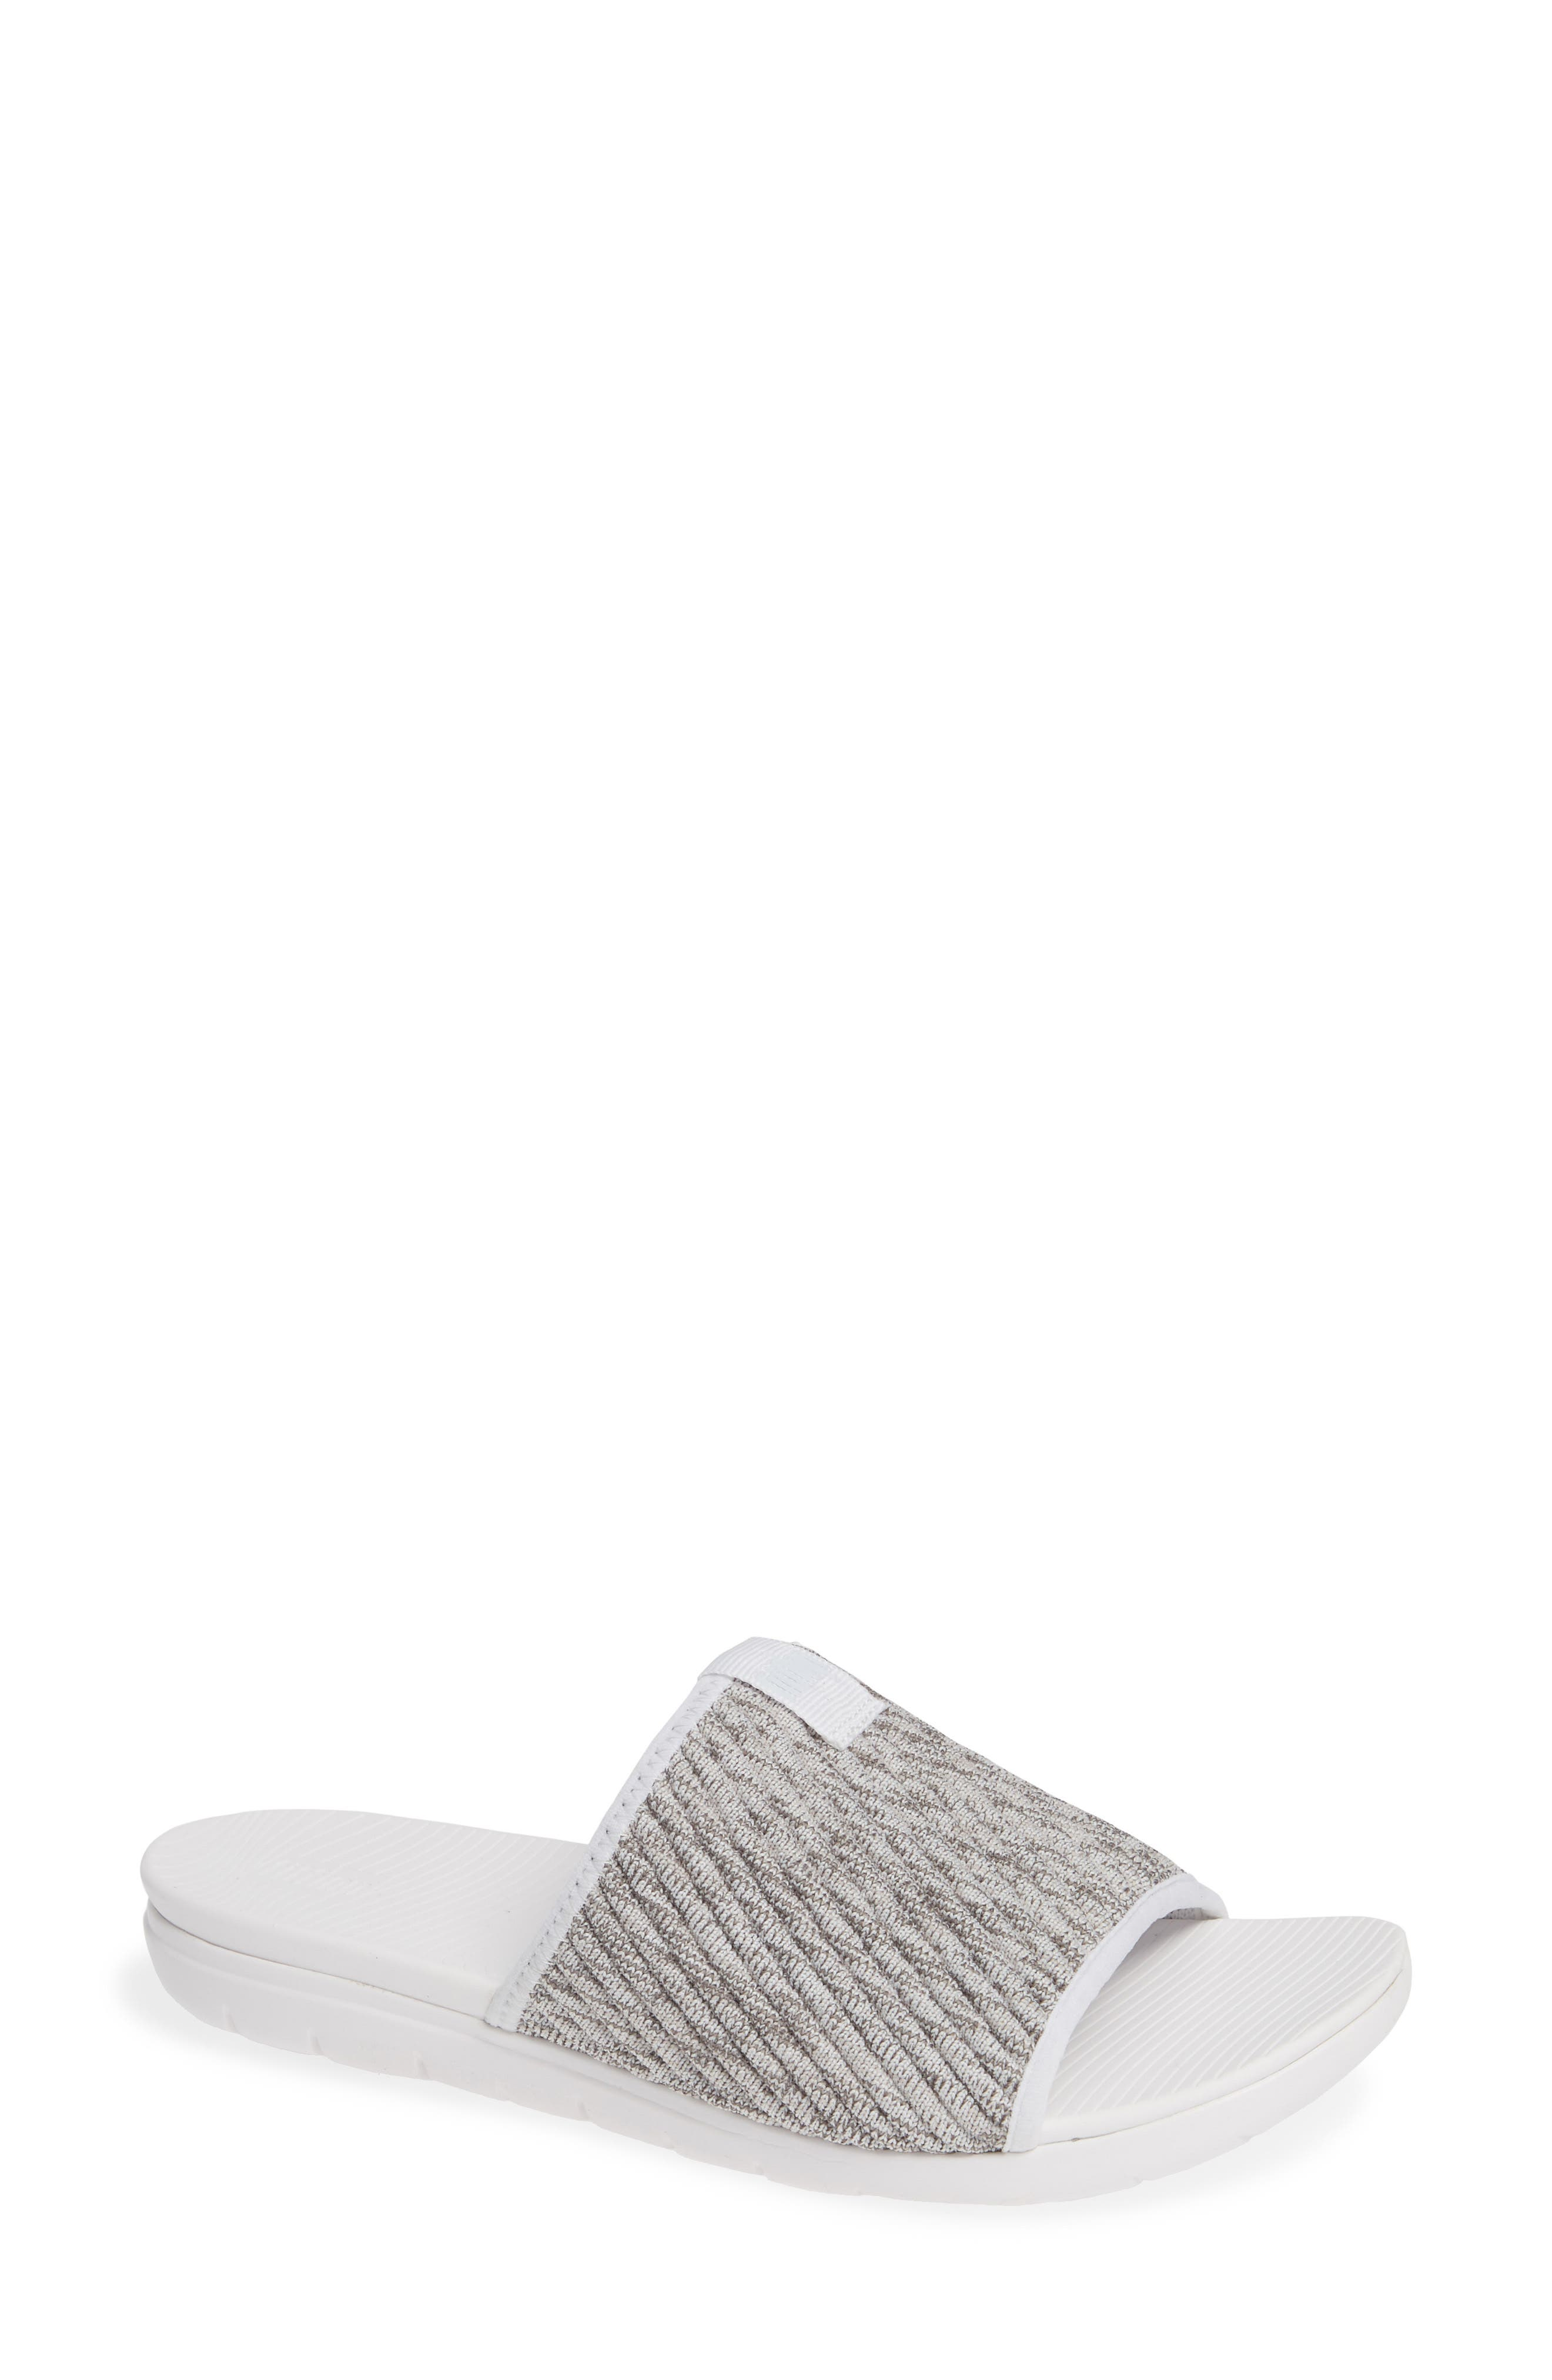 FITFLOP Artknit Slide Sandal, Main, color, URBAN WHITE MIX FABRIC